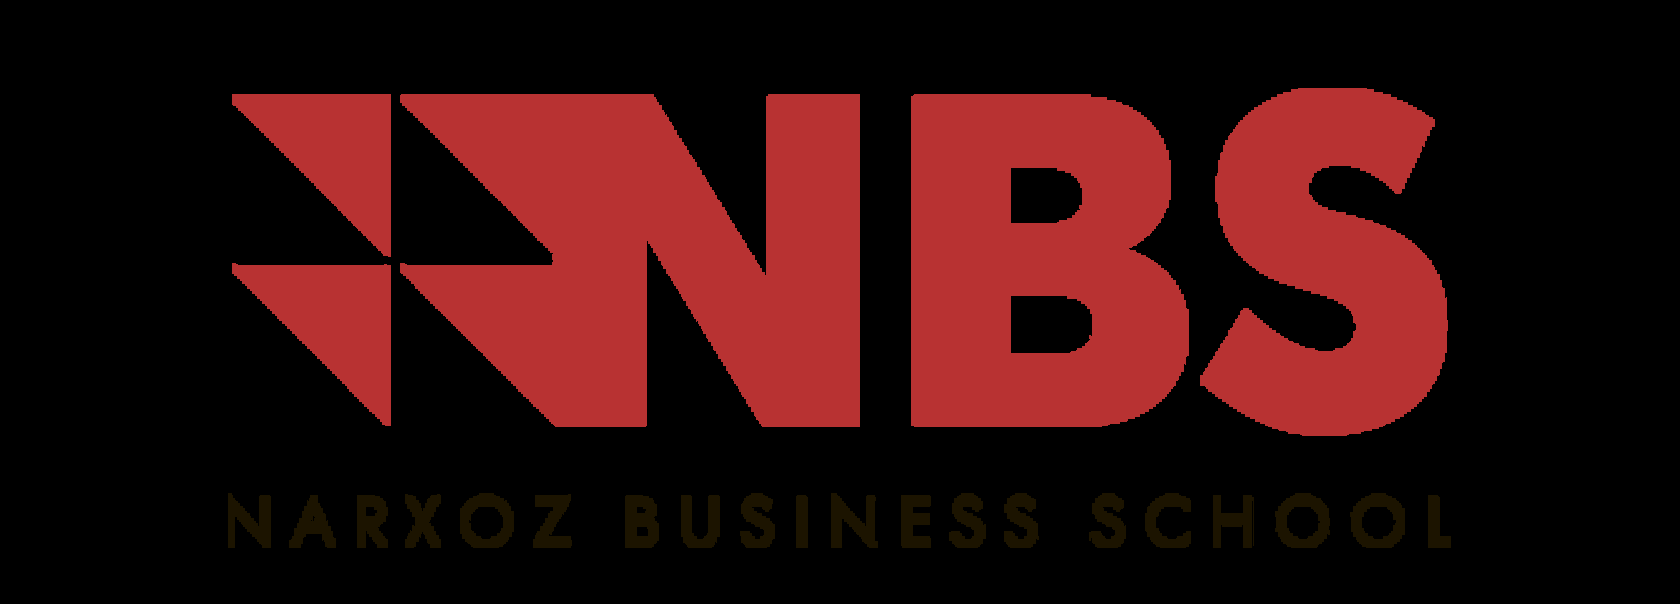 Narxoz Business School